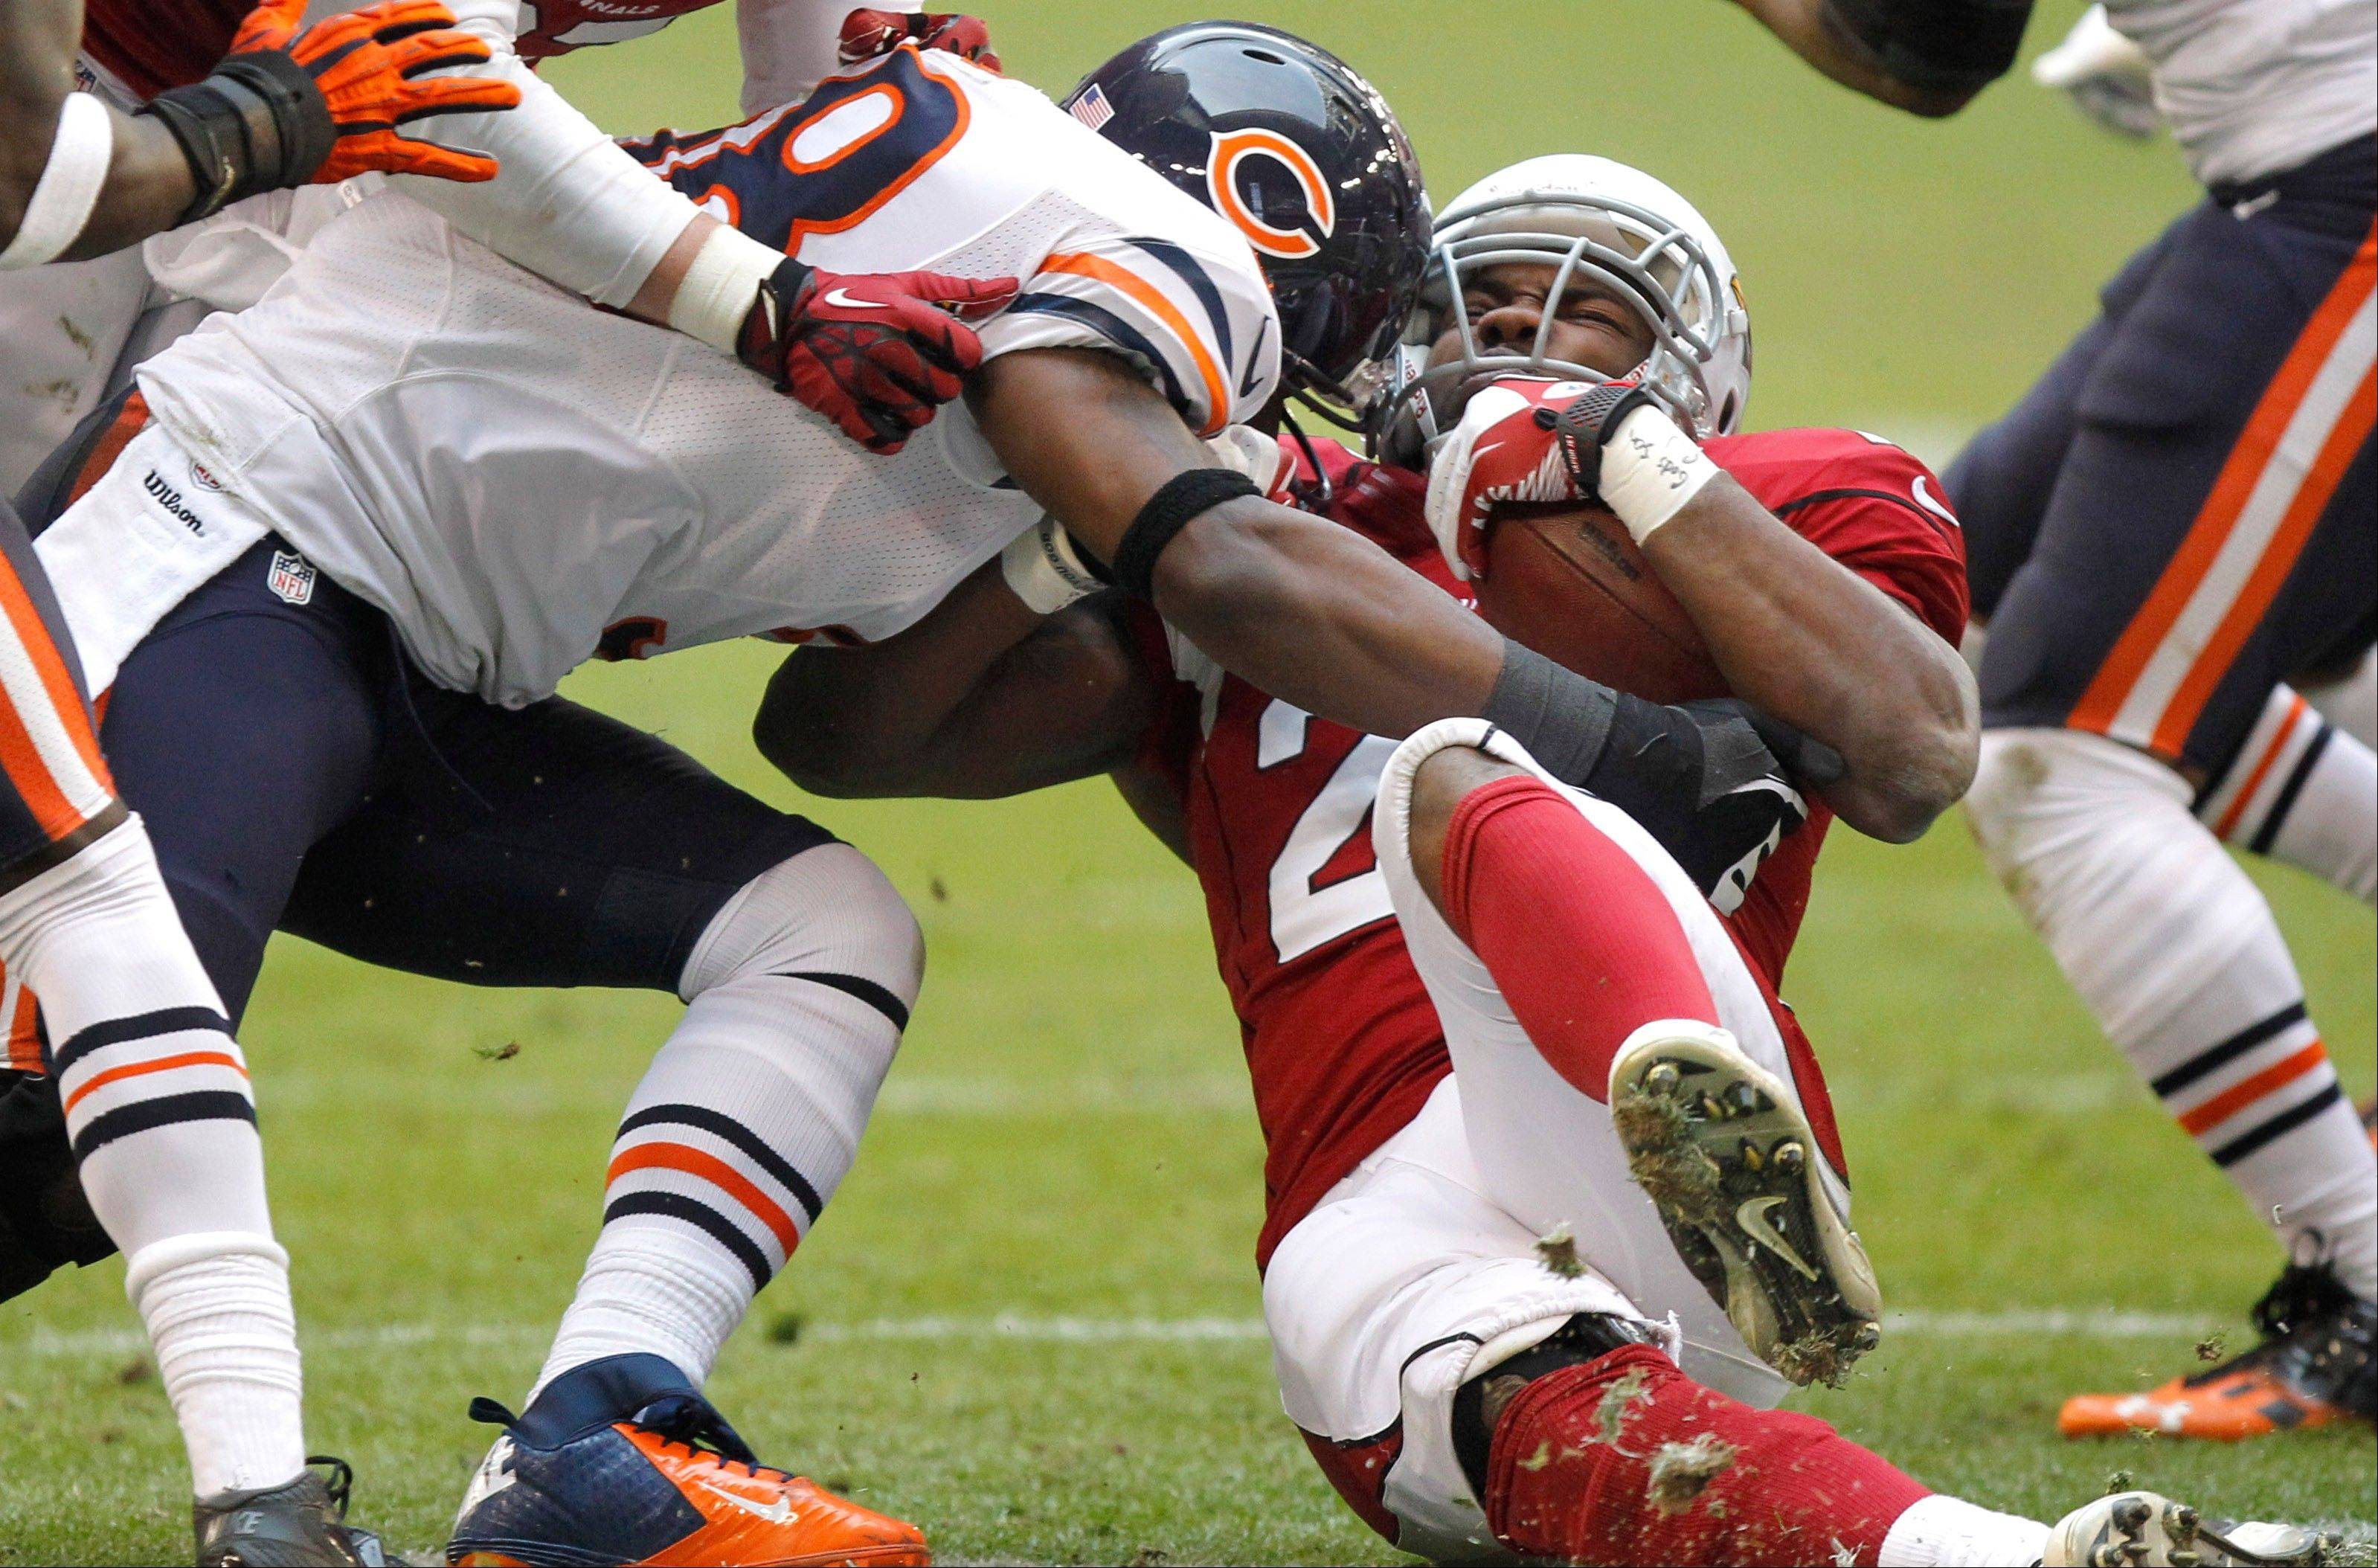 Arizona Cardinals running back Alfonso Smith is hit by Chicago Bears outside linebacker Geno Hayes, left, during the first half.